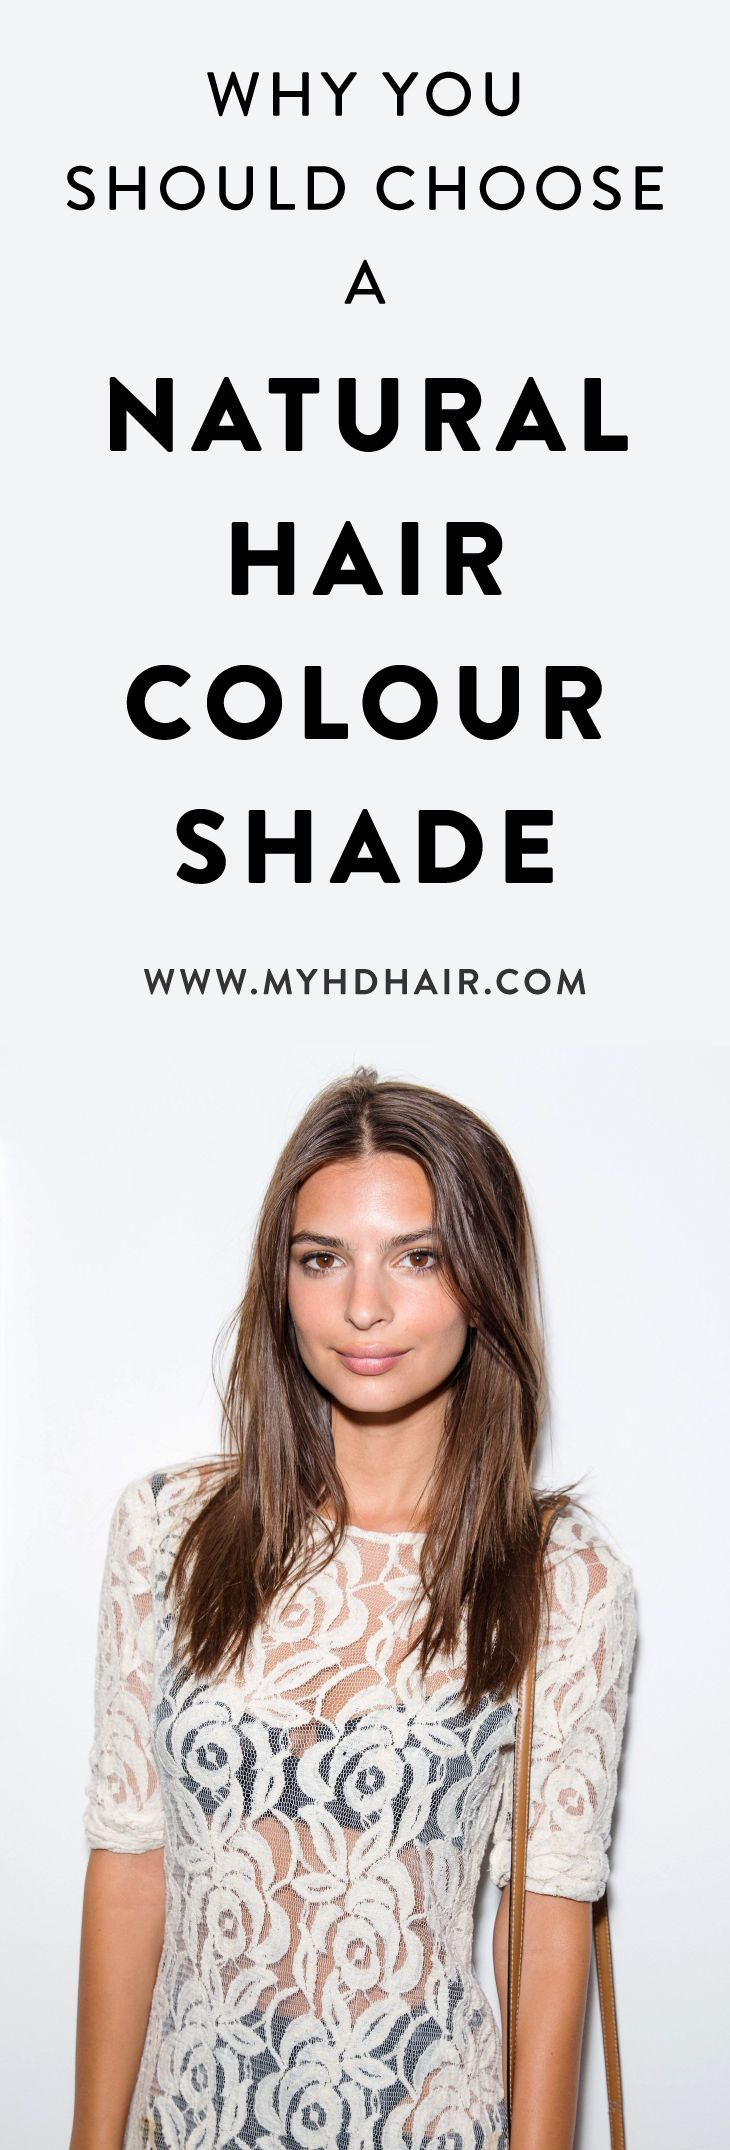 Colouring your Natural Hair Colour, with another Natural Hair Colour, is an easy way to top up your Colour and give it some pizazz.